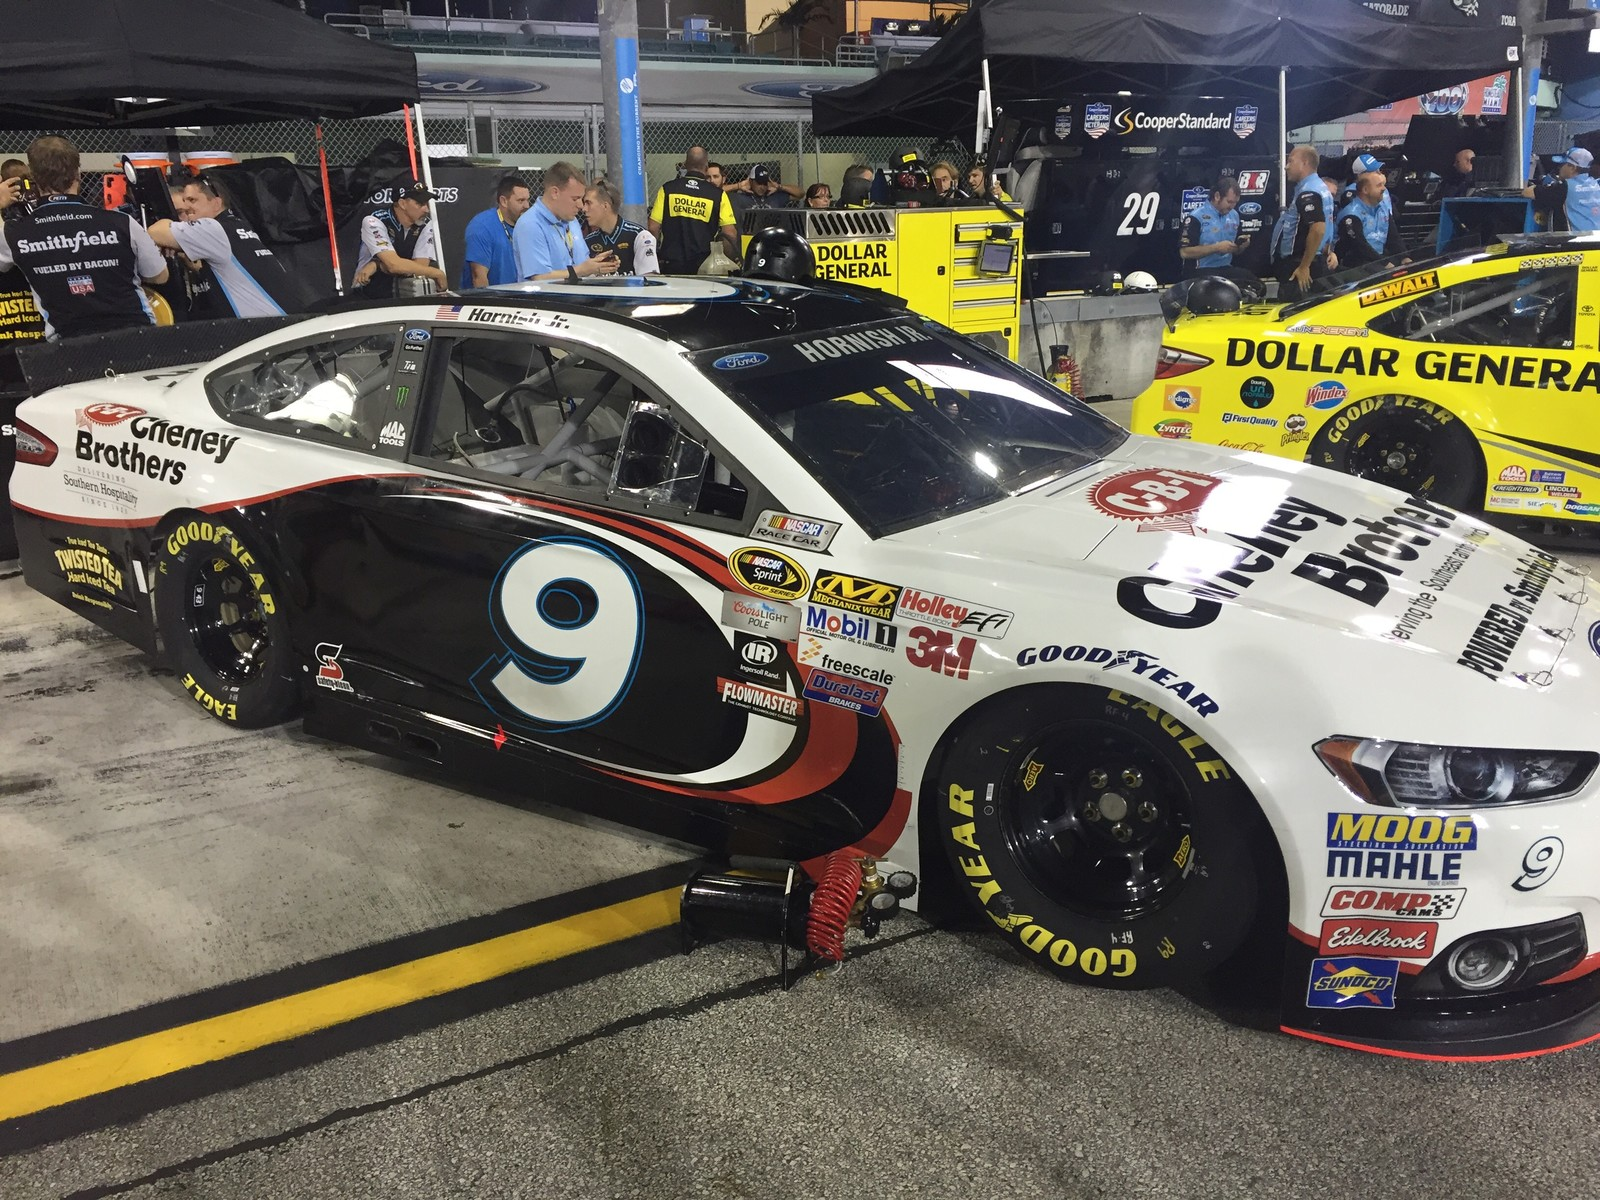 The #9 Cheney Brothers Ford Fusion and crew awaiting qualifying at Homestead-Miami Speedway on November 20th, 2015 (Photo credit: Roy Gangdal of BK Racing)